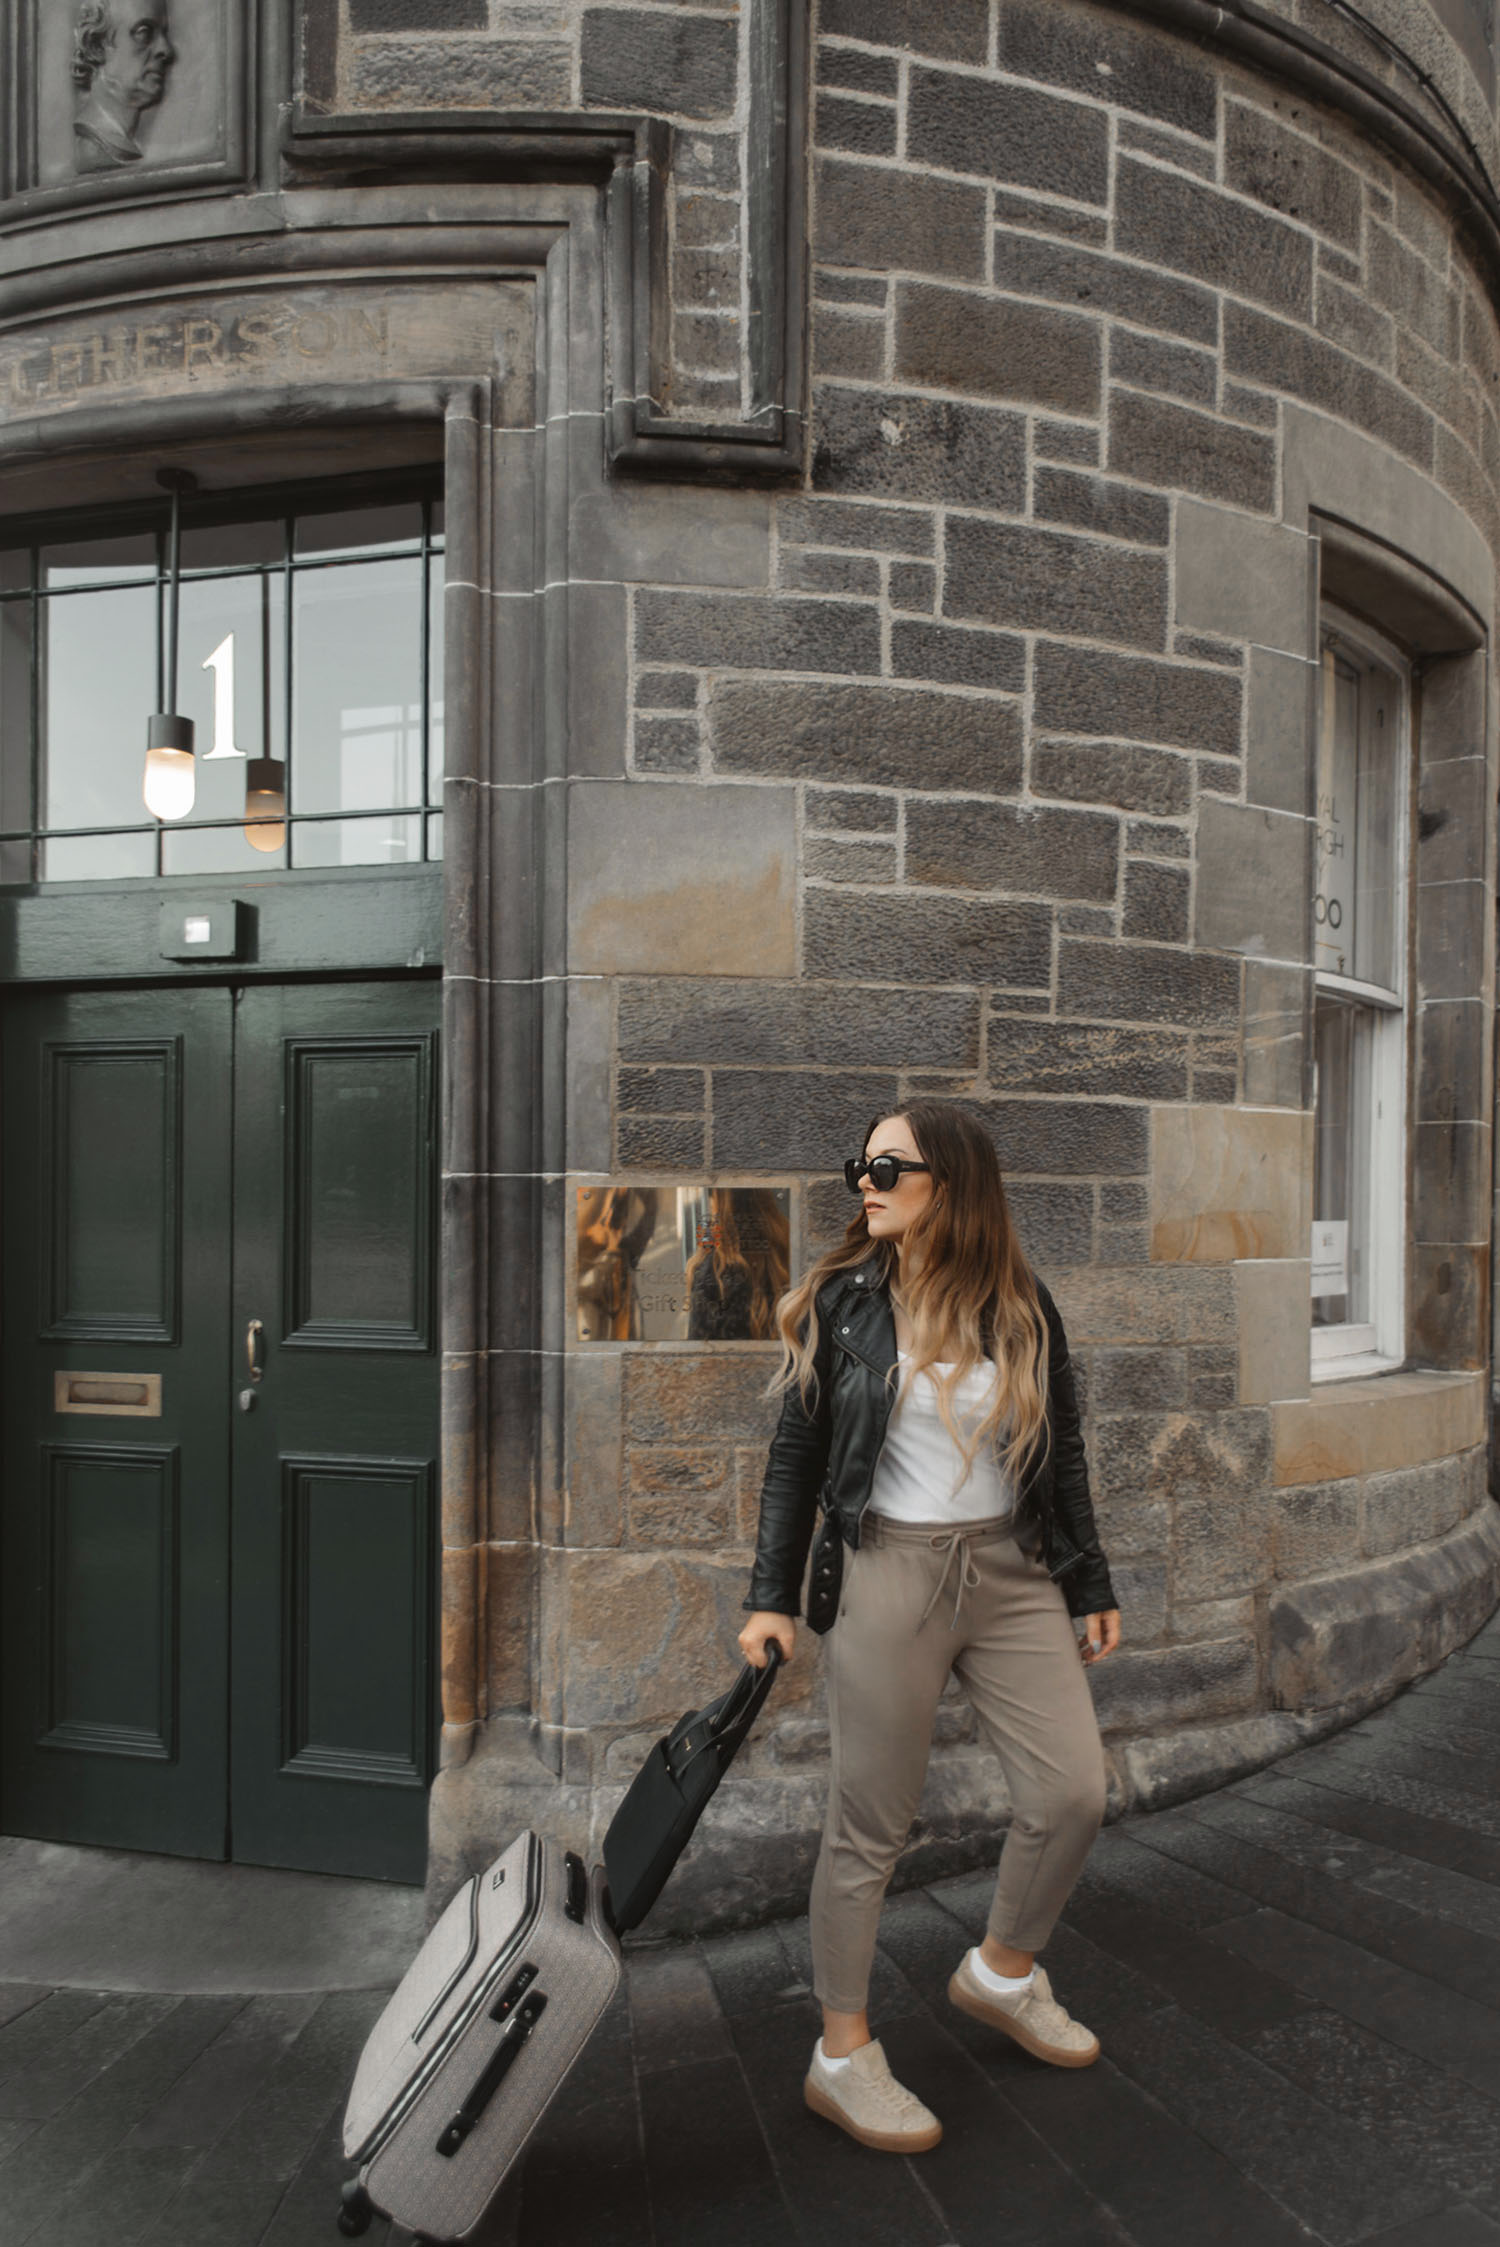 Travel Outfit Ideas: How to Travel in Style